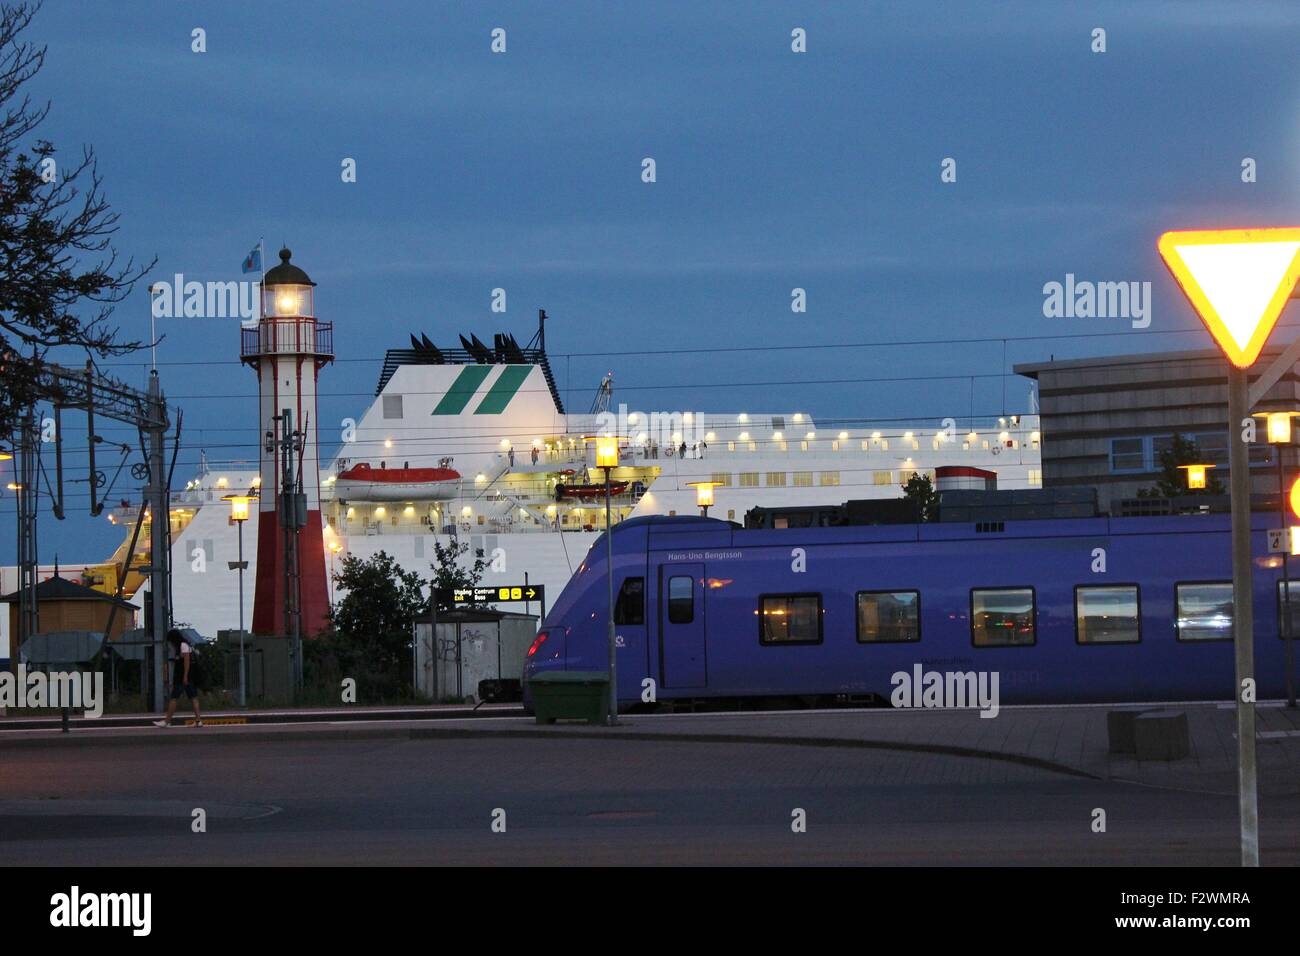 In Ystad, South Sweden, Scandinavia, Europe. Night Scene on the waterfront with a train, a cruise ship and a lighthouse. - Stock Image